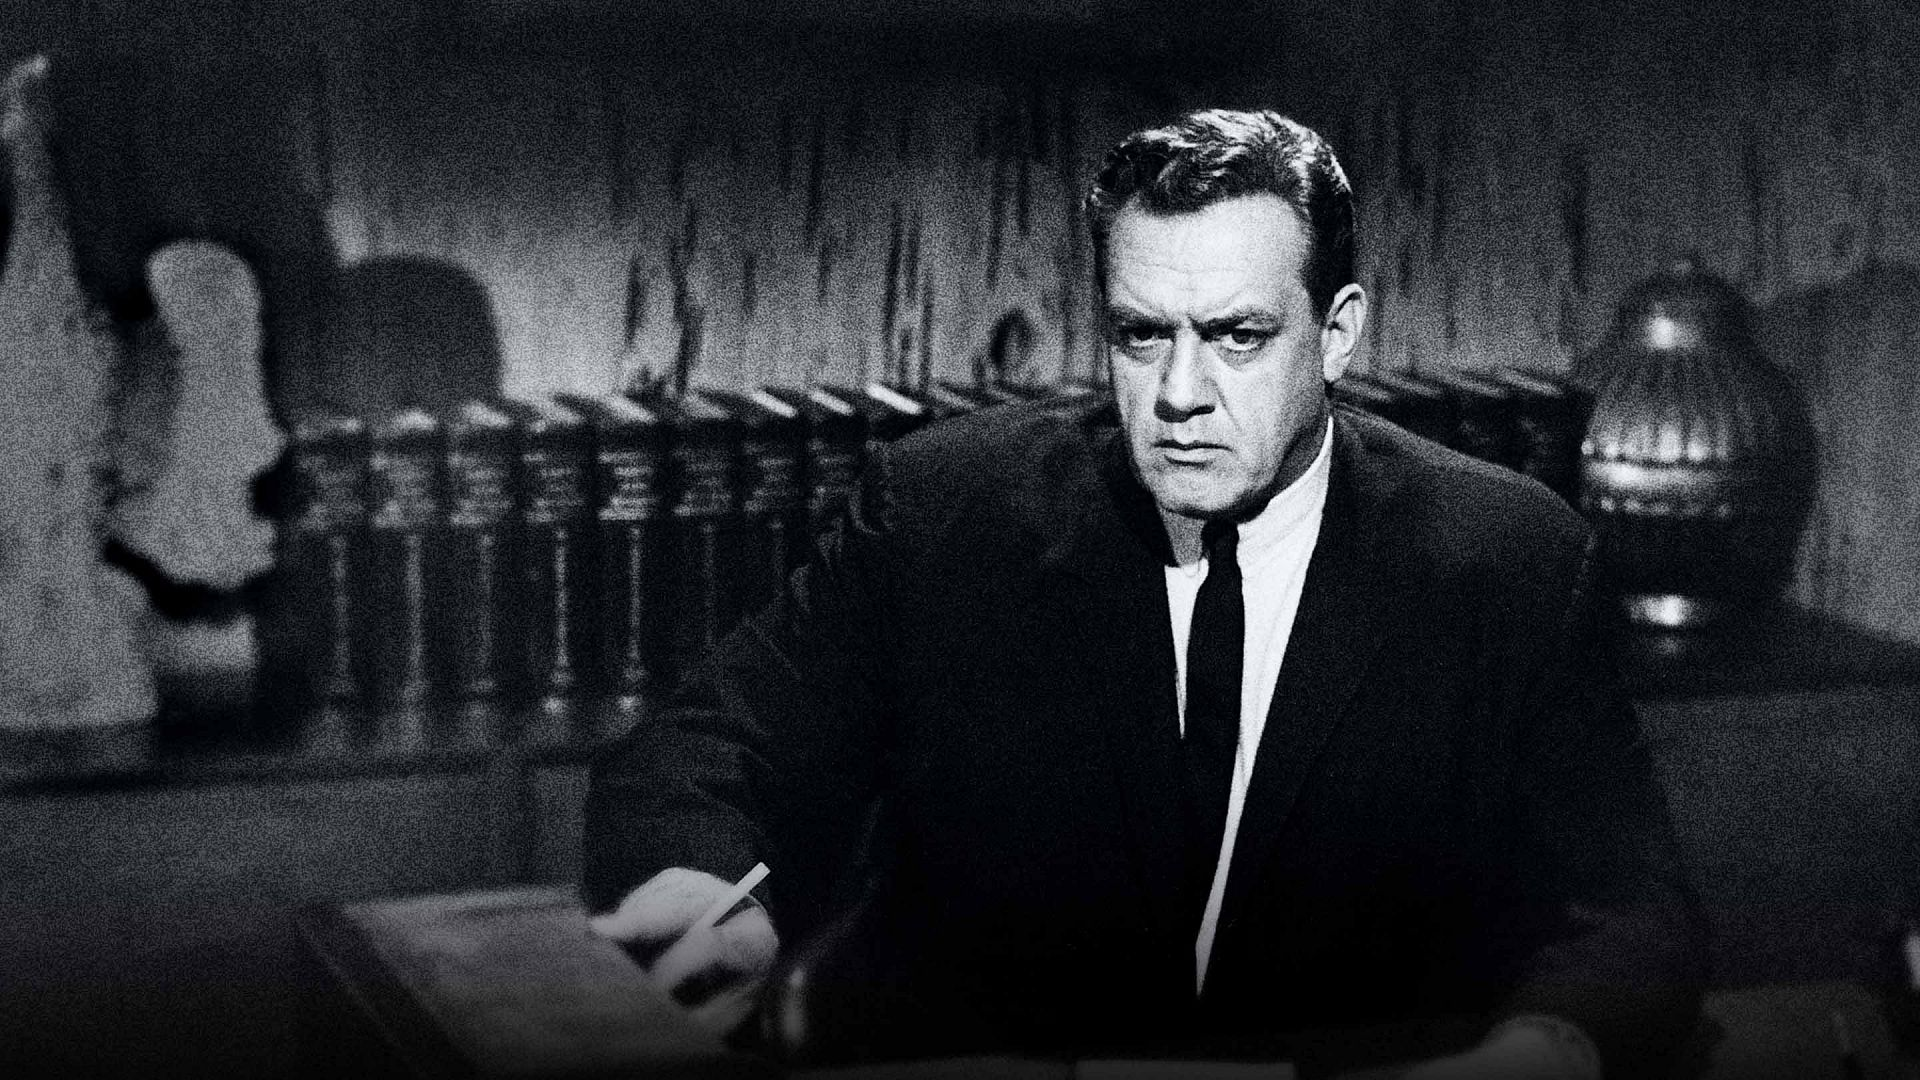 Perry Mason - Watch Full Episodes Online - CBS.com